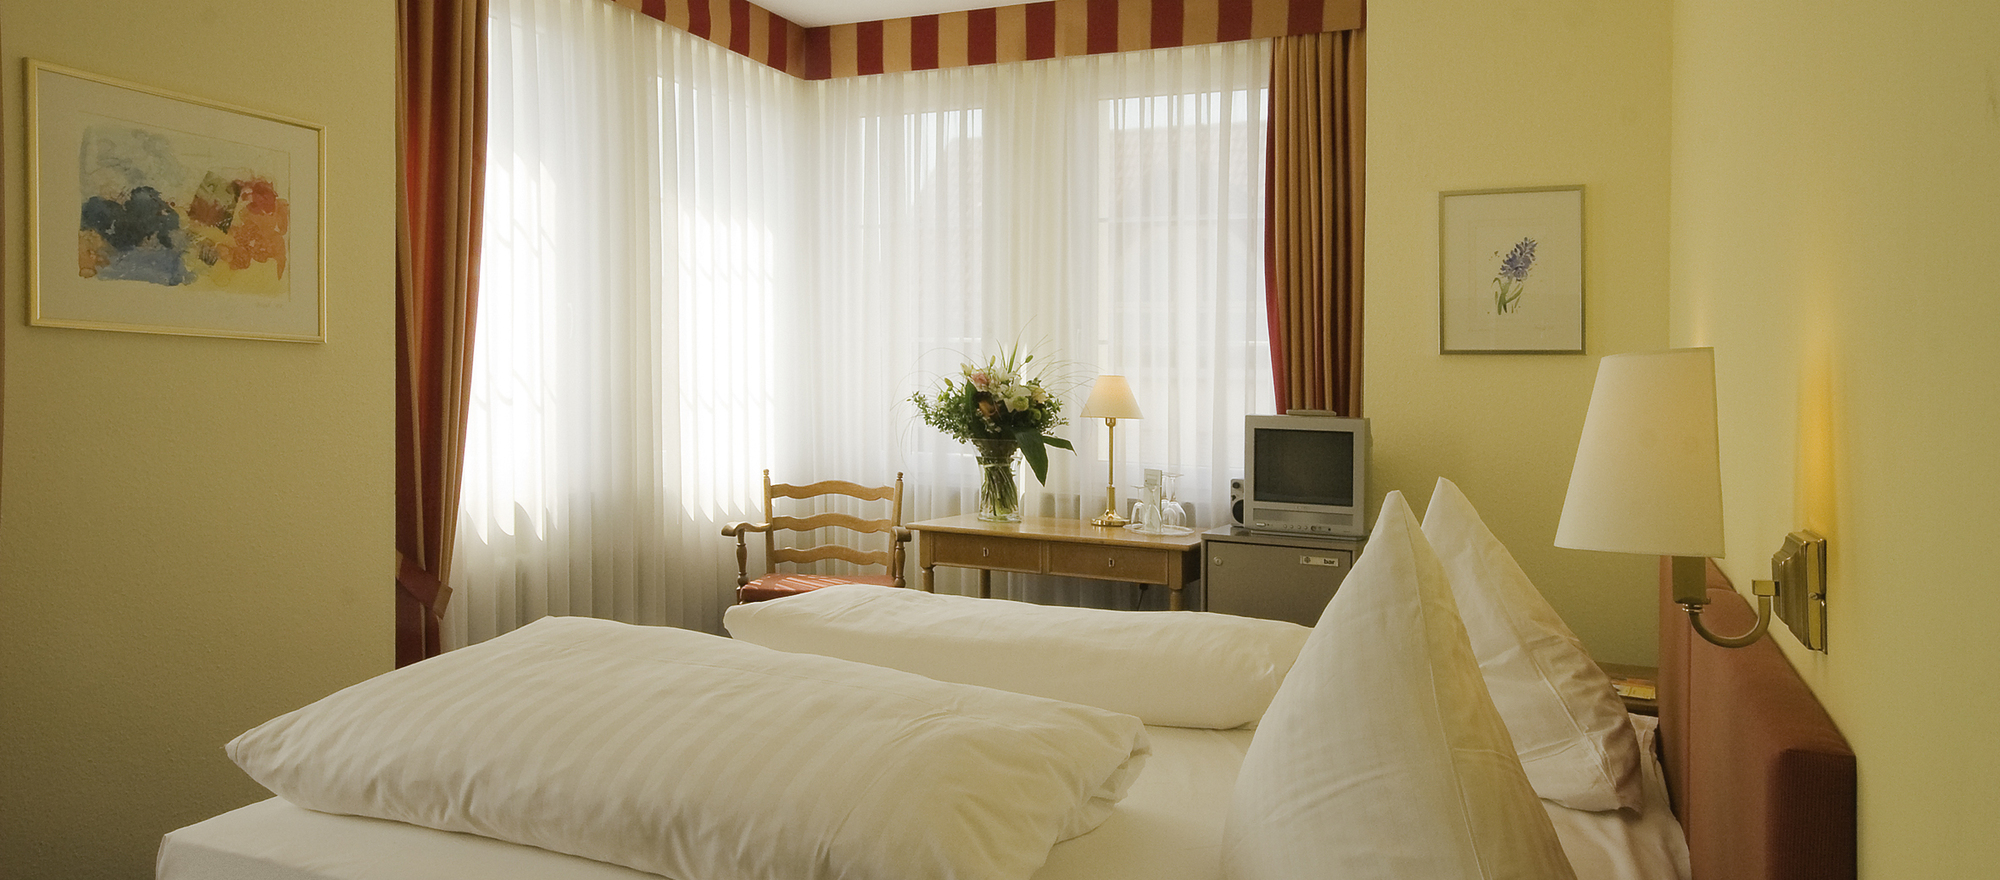 Classy comfort of living in Ringhotel Zum Goldenen Ochsen in Stockach, 4 star hotel at Lake Constance